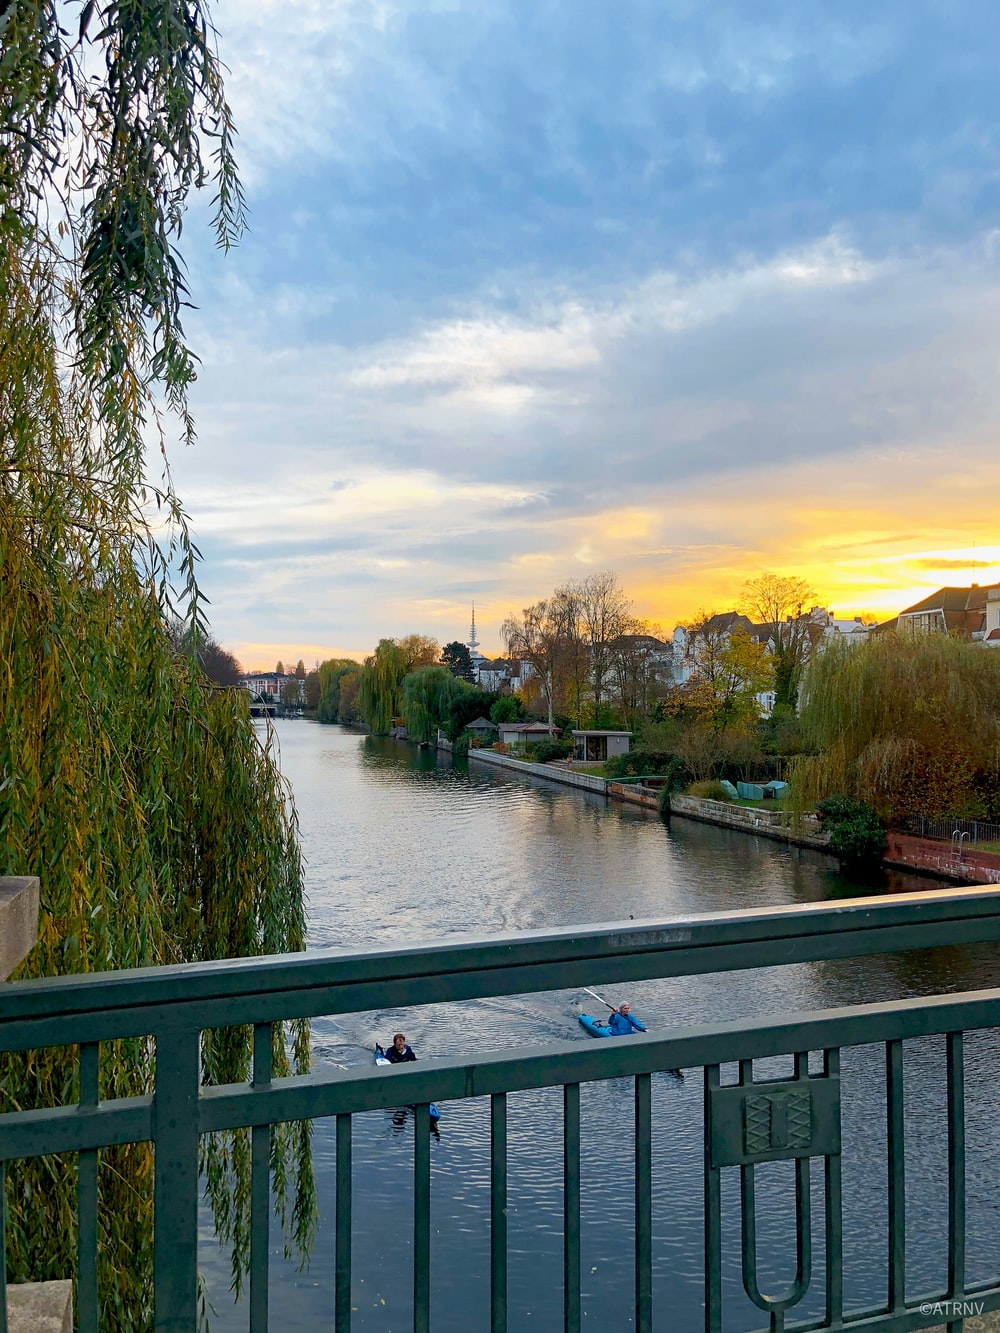 green trees beside river during sunset